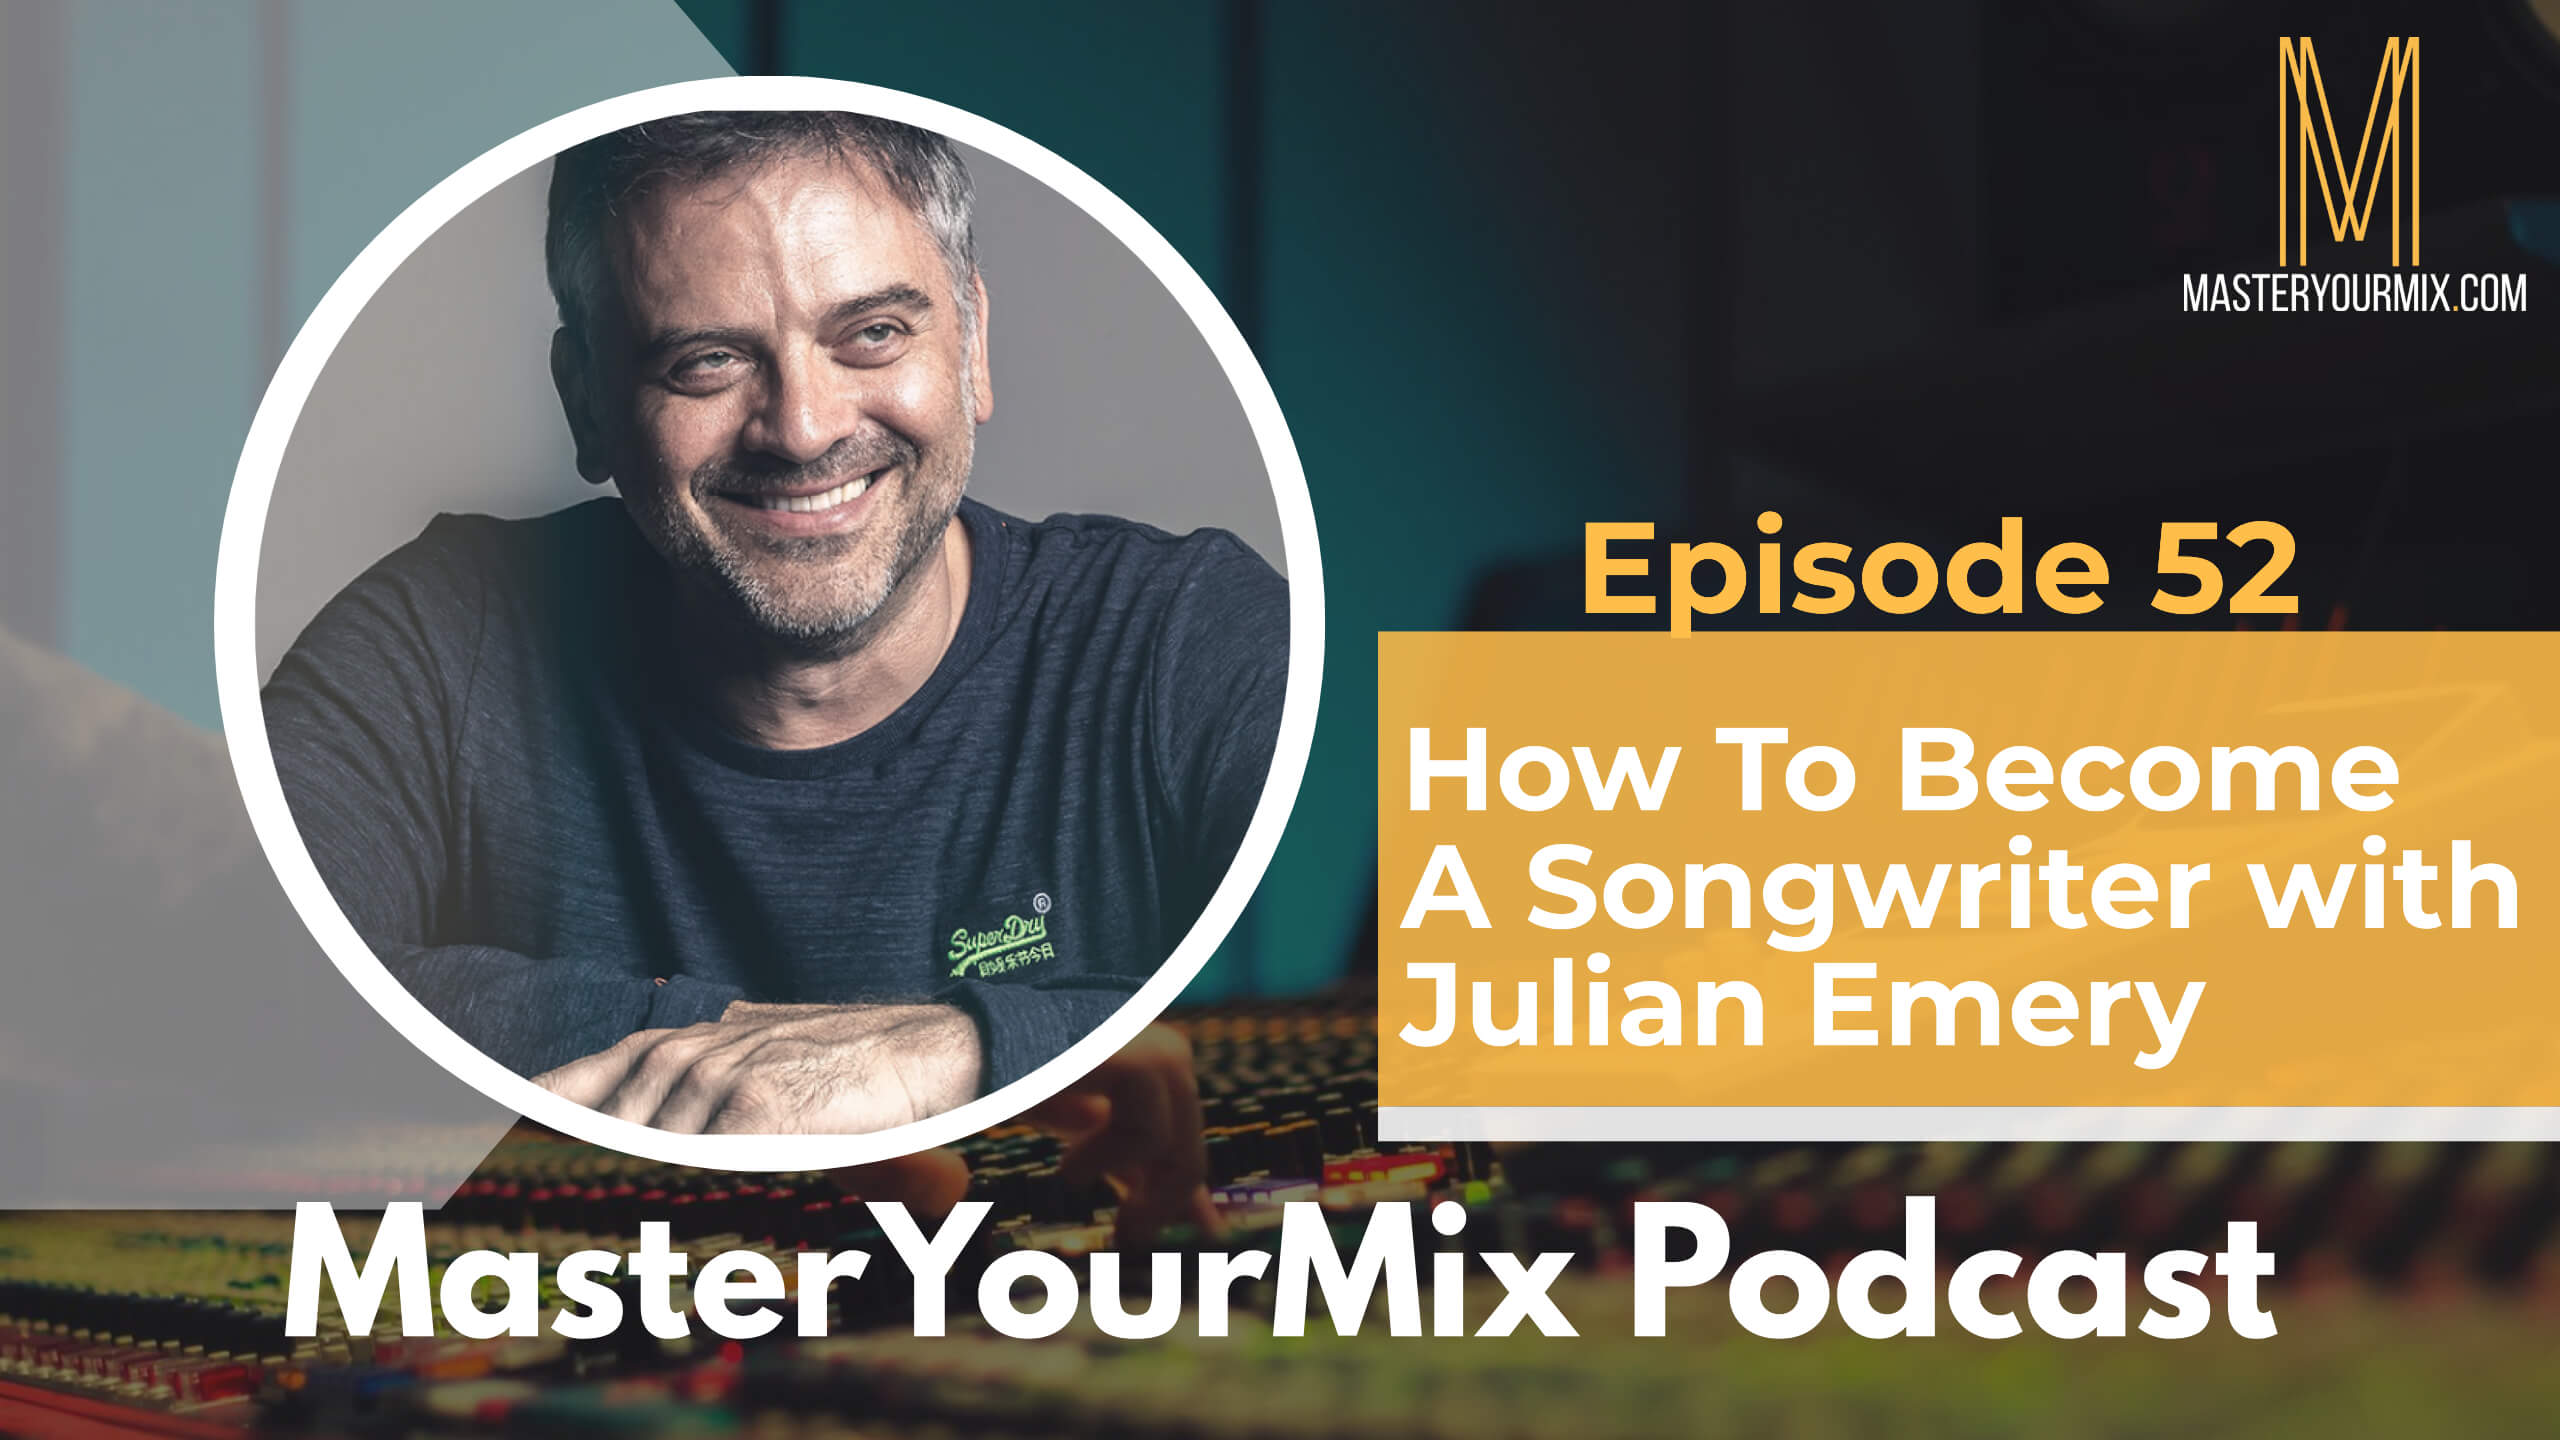 master your mix podcast, ep 52, julian emery